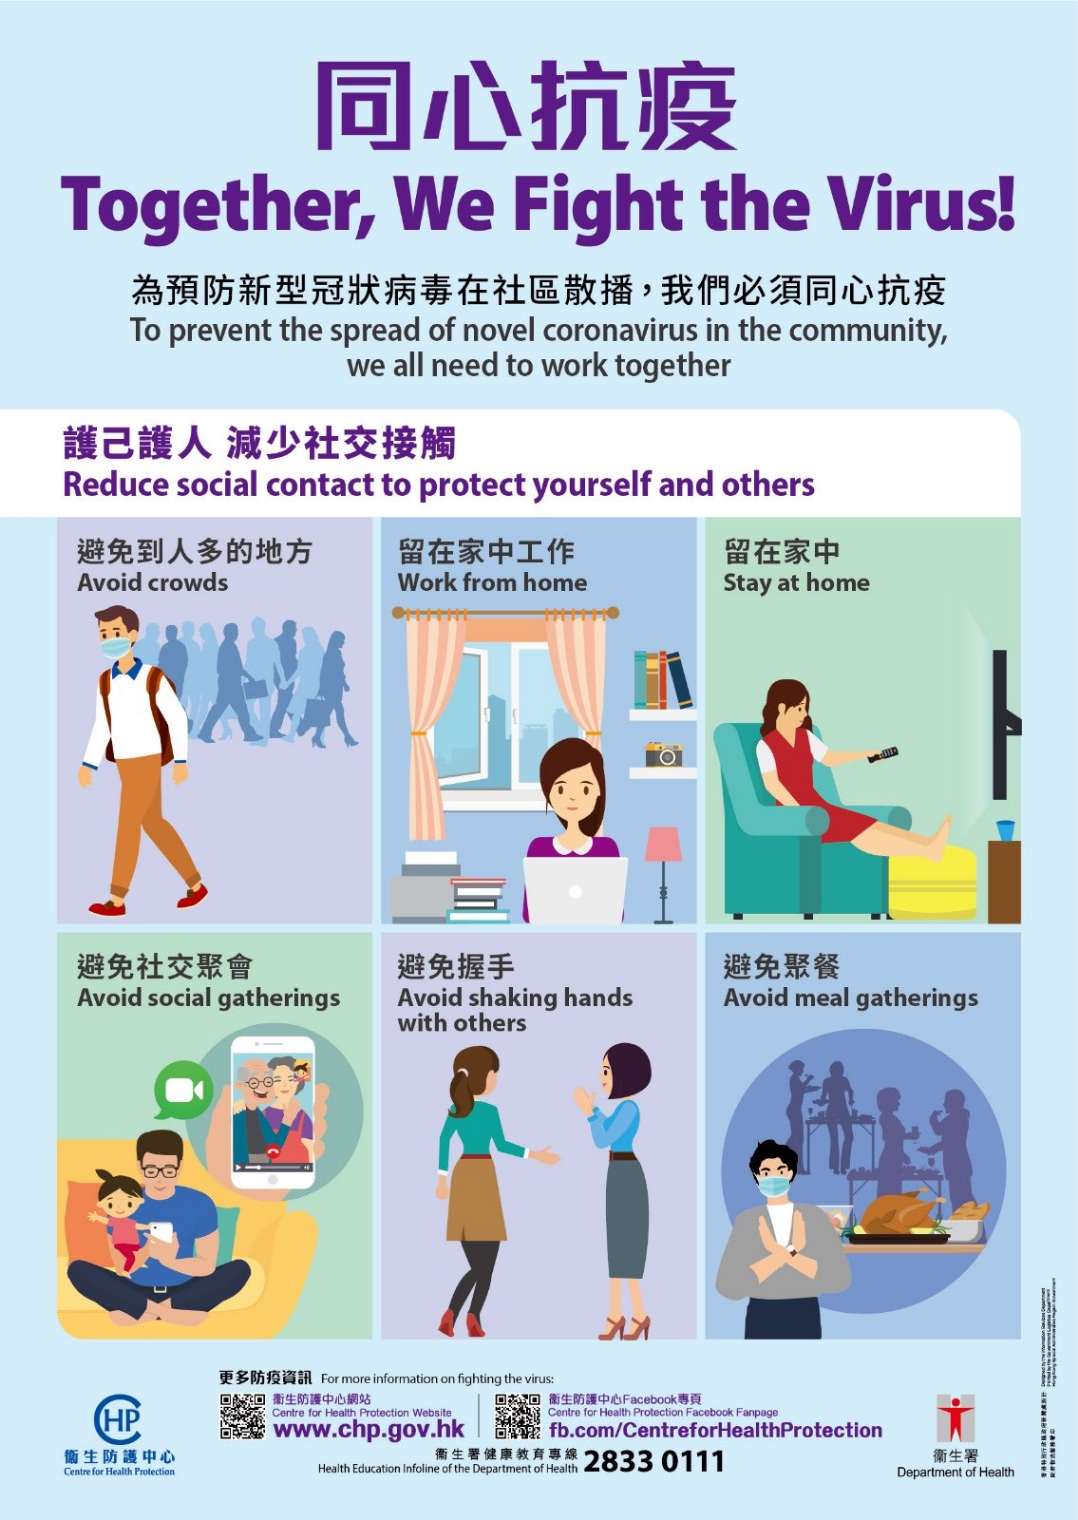 A poster from the Hong Kong Centre of Health Protection